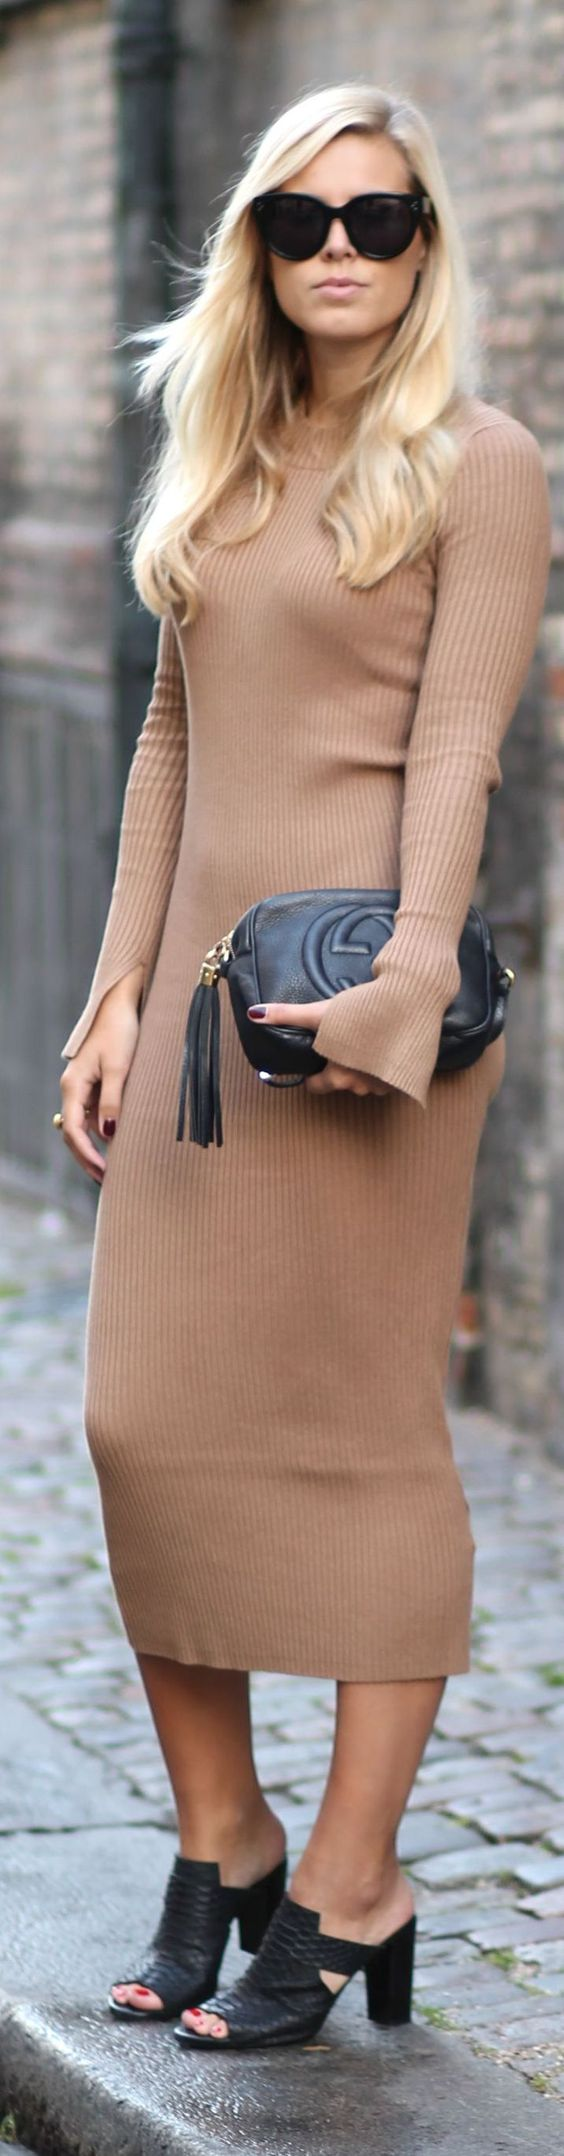 Haute in Philadelphia. Fall is here . Camel Ribbed Midi Dress Fall Inspo: